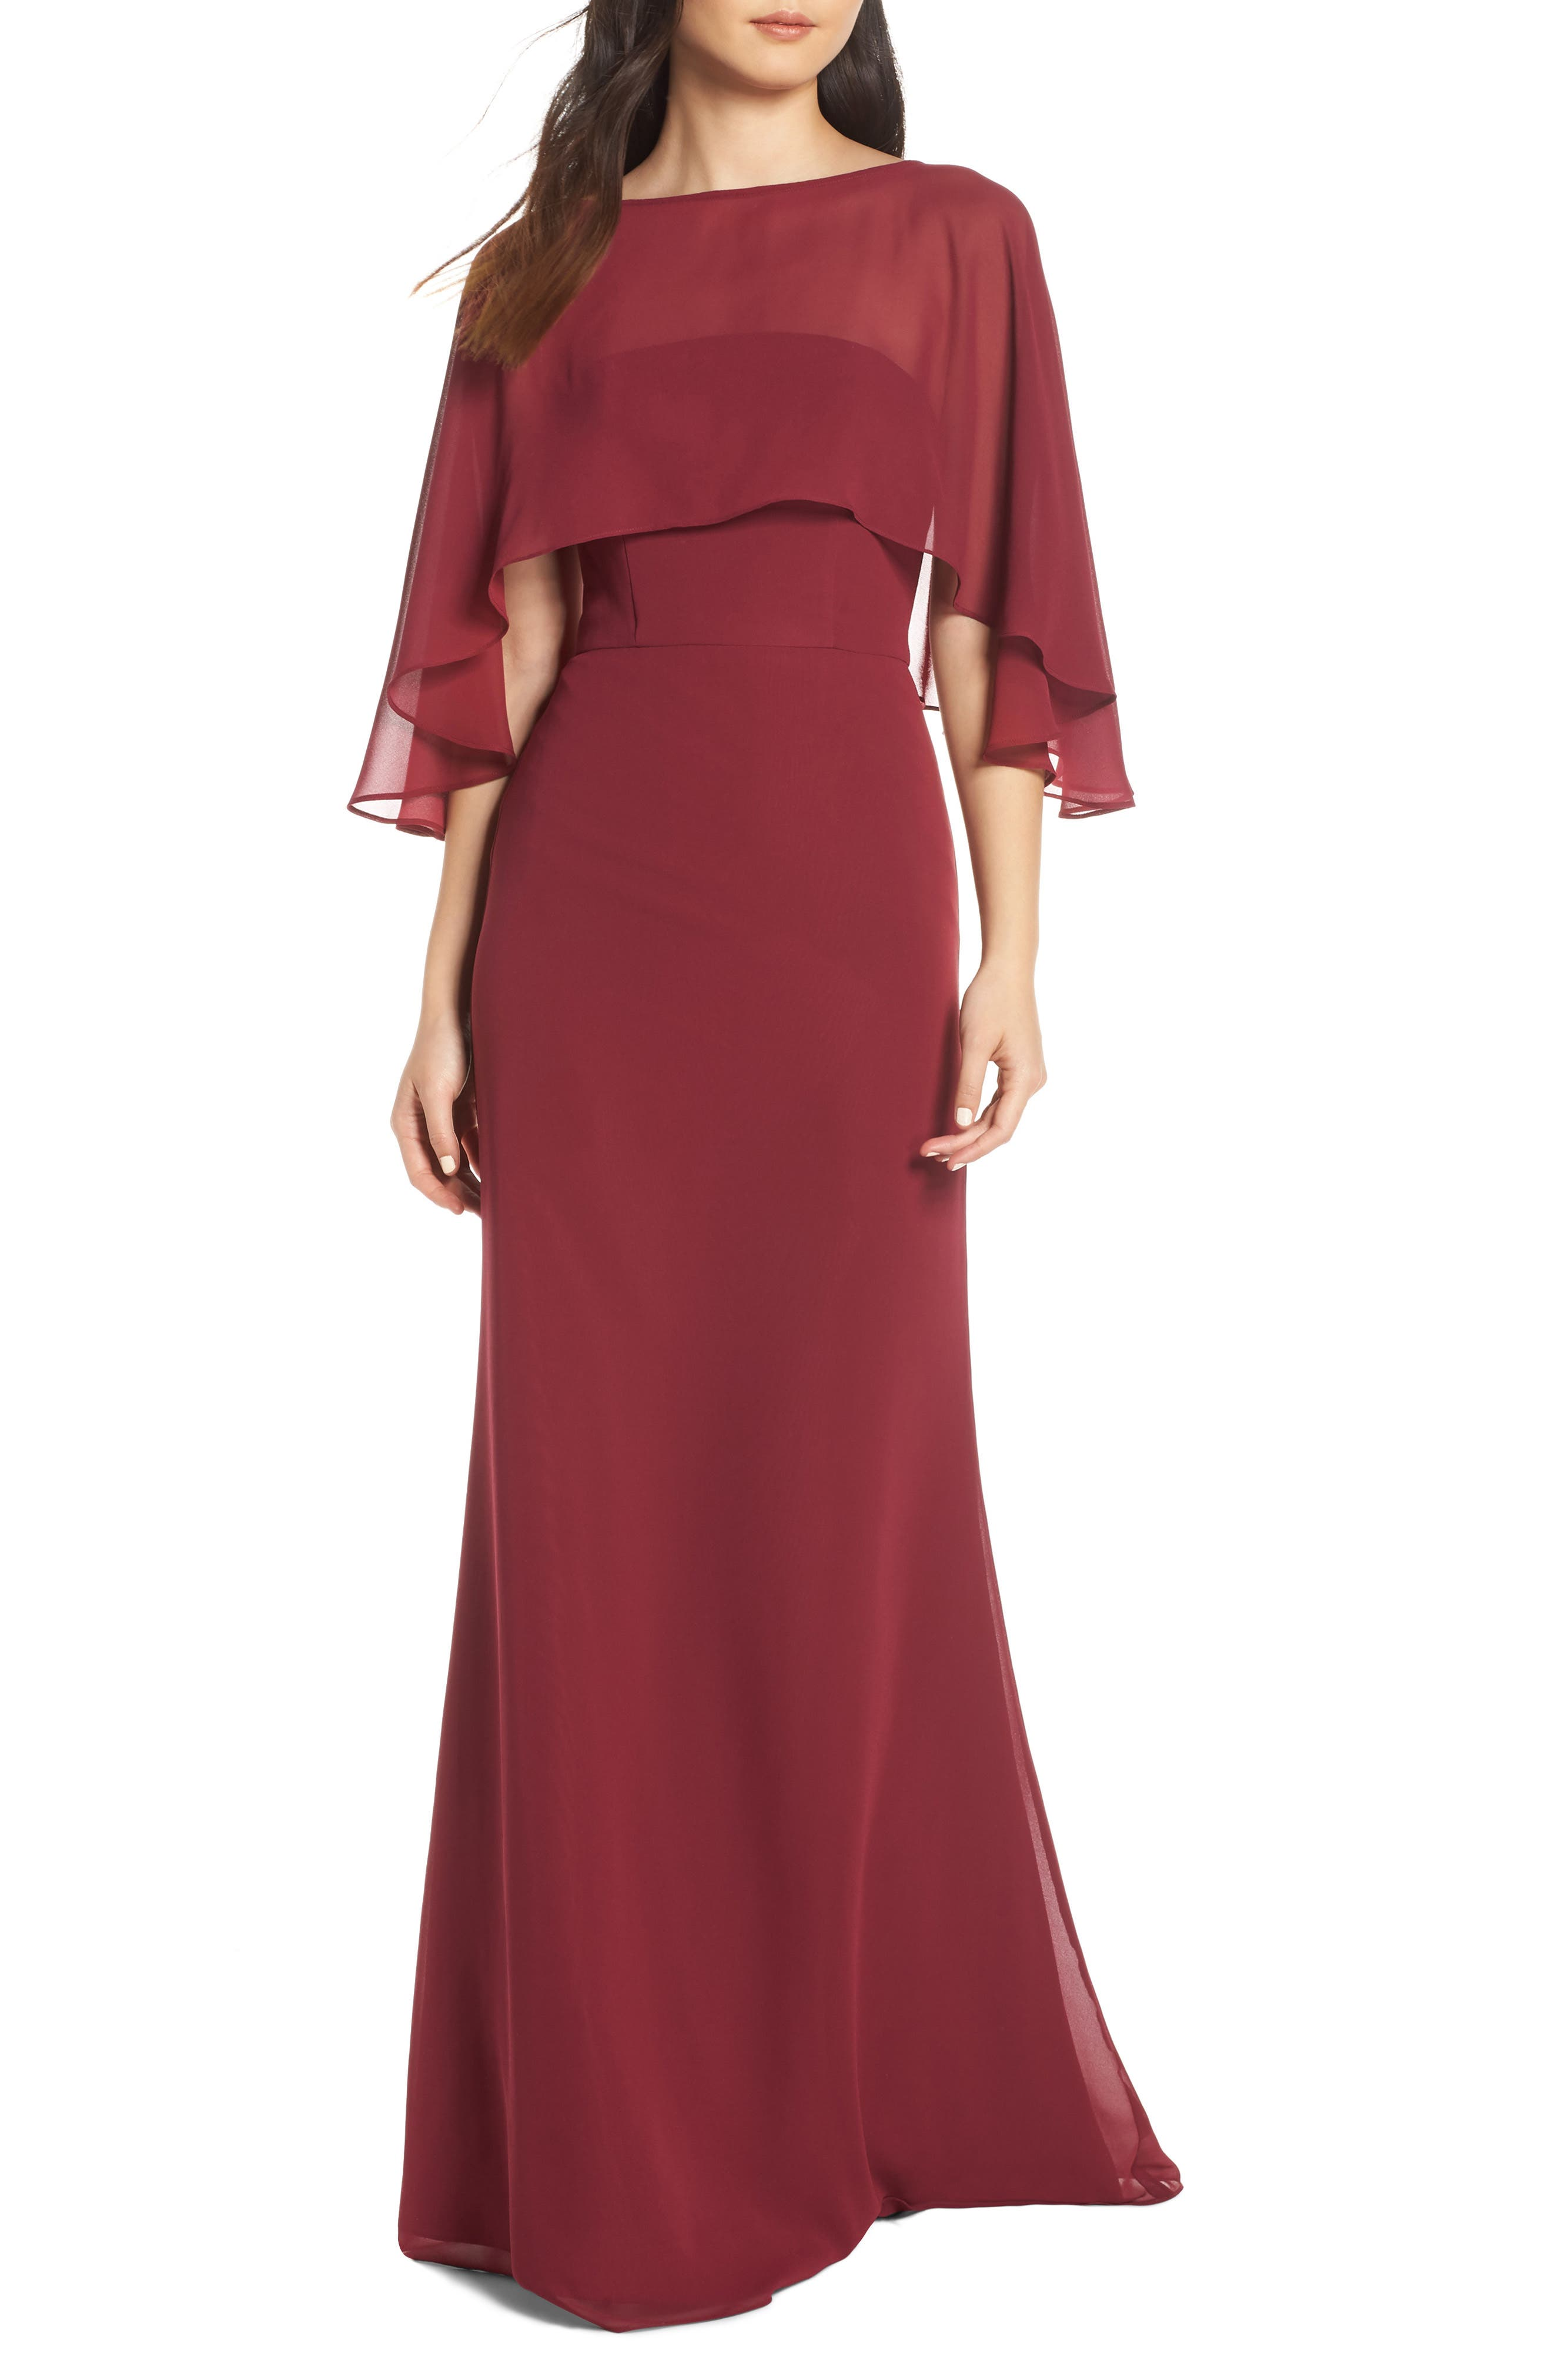 Hayley Paige Occasions Strapless Chiffon Evening Dress With Cape, Burgundy